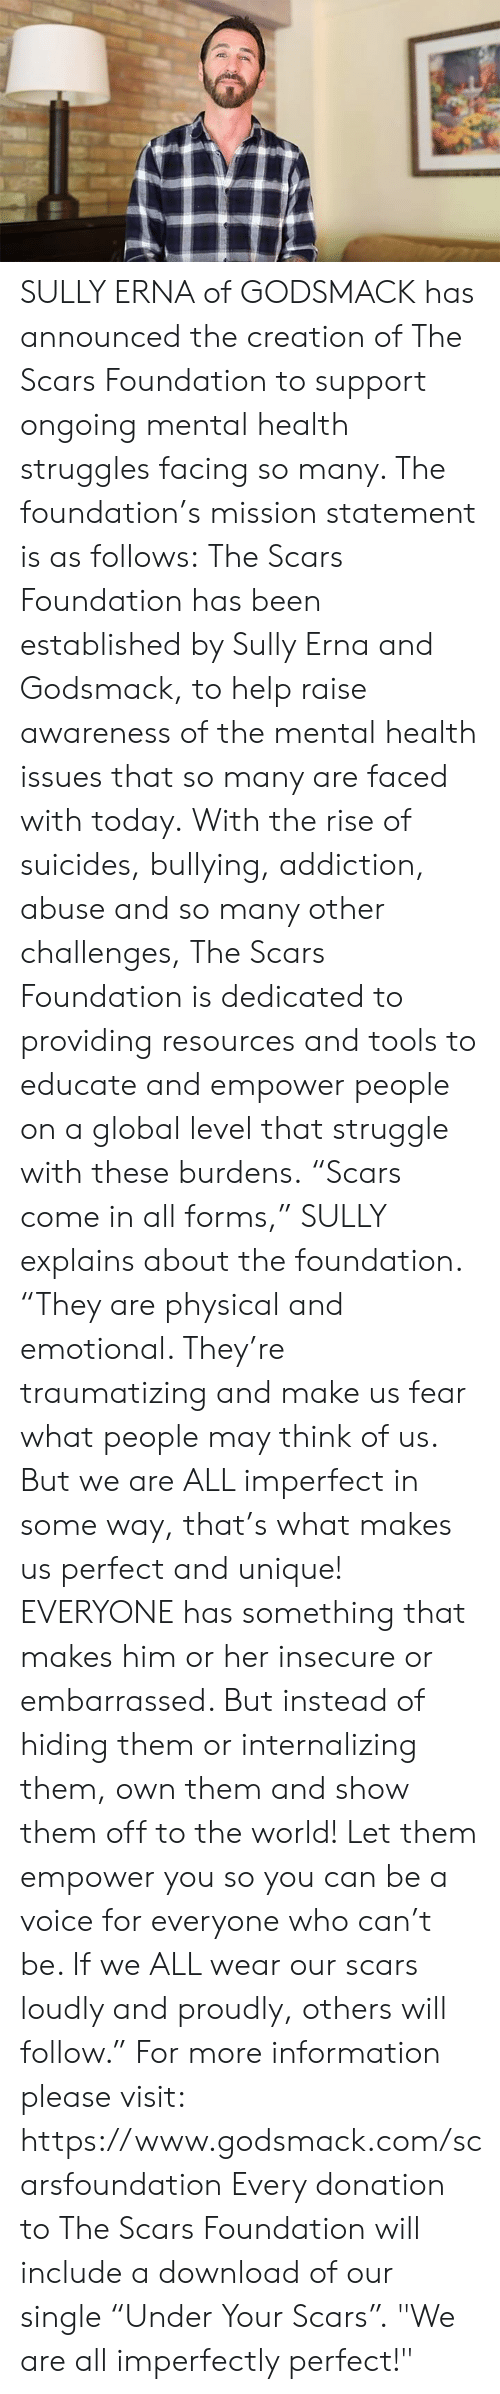 "Memes, Struggle, and Help: SULLY ERNA of GODSMACK has announced the creation of The Scars Foundation to support ongoing mental health struggles facing so many.  The foundation's mission statement is as follows:  The Scars Foundation has been established by Sully Erna and Godsmack, to help raise awareness of the mental health issues that so many are faced with today.  With the rise of suicides, bullying, addiction, abuse and so many other challenges, The Scars Foundation is dedicated to providing resources and tools to educate and empower people on a global level that struggle with these burdens.  ""Scars come in all forms,"" SULLY explains about the foundation.  ""They are physical and emotional. They're traumatizing and make us fear what people may think of us. But we are ALL imperfect in some way, that's what makes us perfect and unique!  EVERYONE has something that makes him or her insecure or embarrassed. But instead of hiding them or internalizing them, own them and show them off to the world!  Let them empower you so you can be a voice for everyone who can't be. If we ALL wear our scars loudly and proudly, others will follow.""  For more information please visit: https://www.godsmack.com/scarsfoundation  Every donation to The Scars Foundation will include a download of our single ""Under Your Scars"".  ""We are all imperfectly perfect!"""